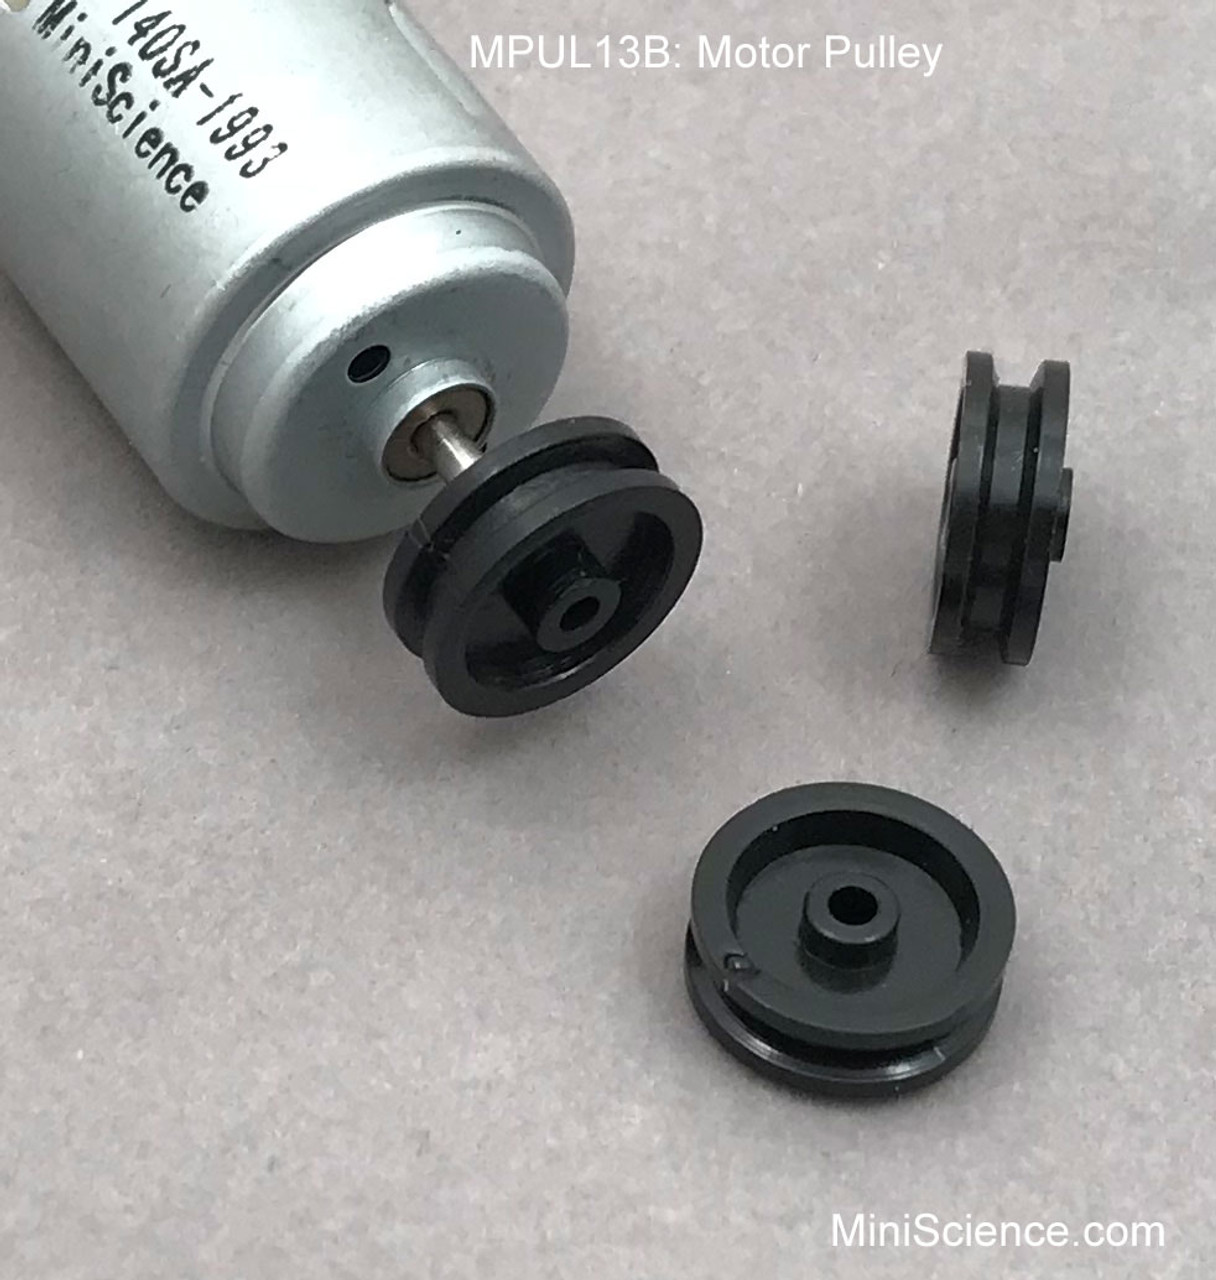 Motor Pulley MPUL13B for small motors with 2-mm shaft